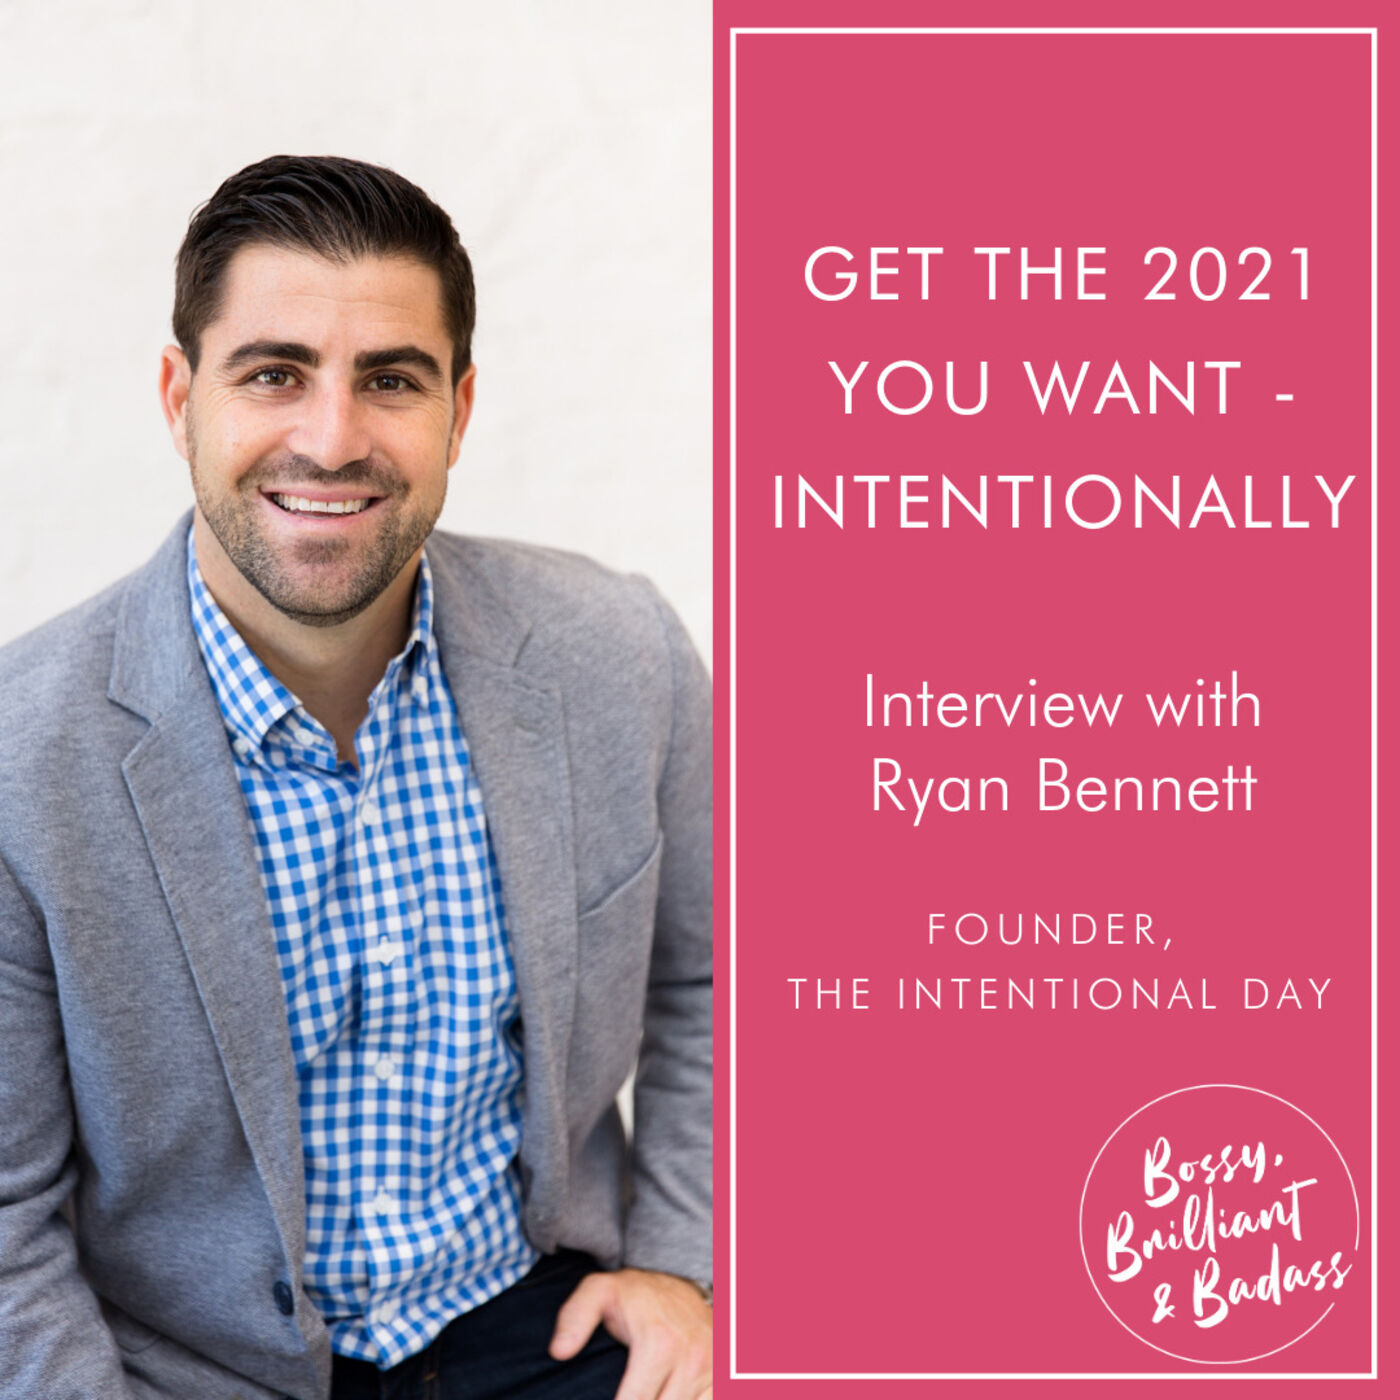 How to Get the 2021 You Want - Intentionally! (with Ryan Bennett)